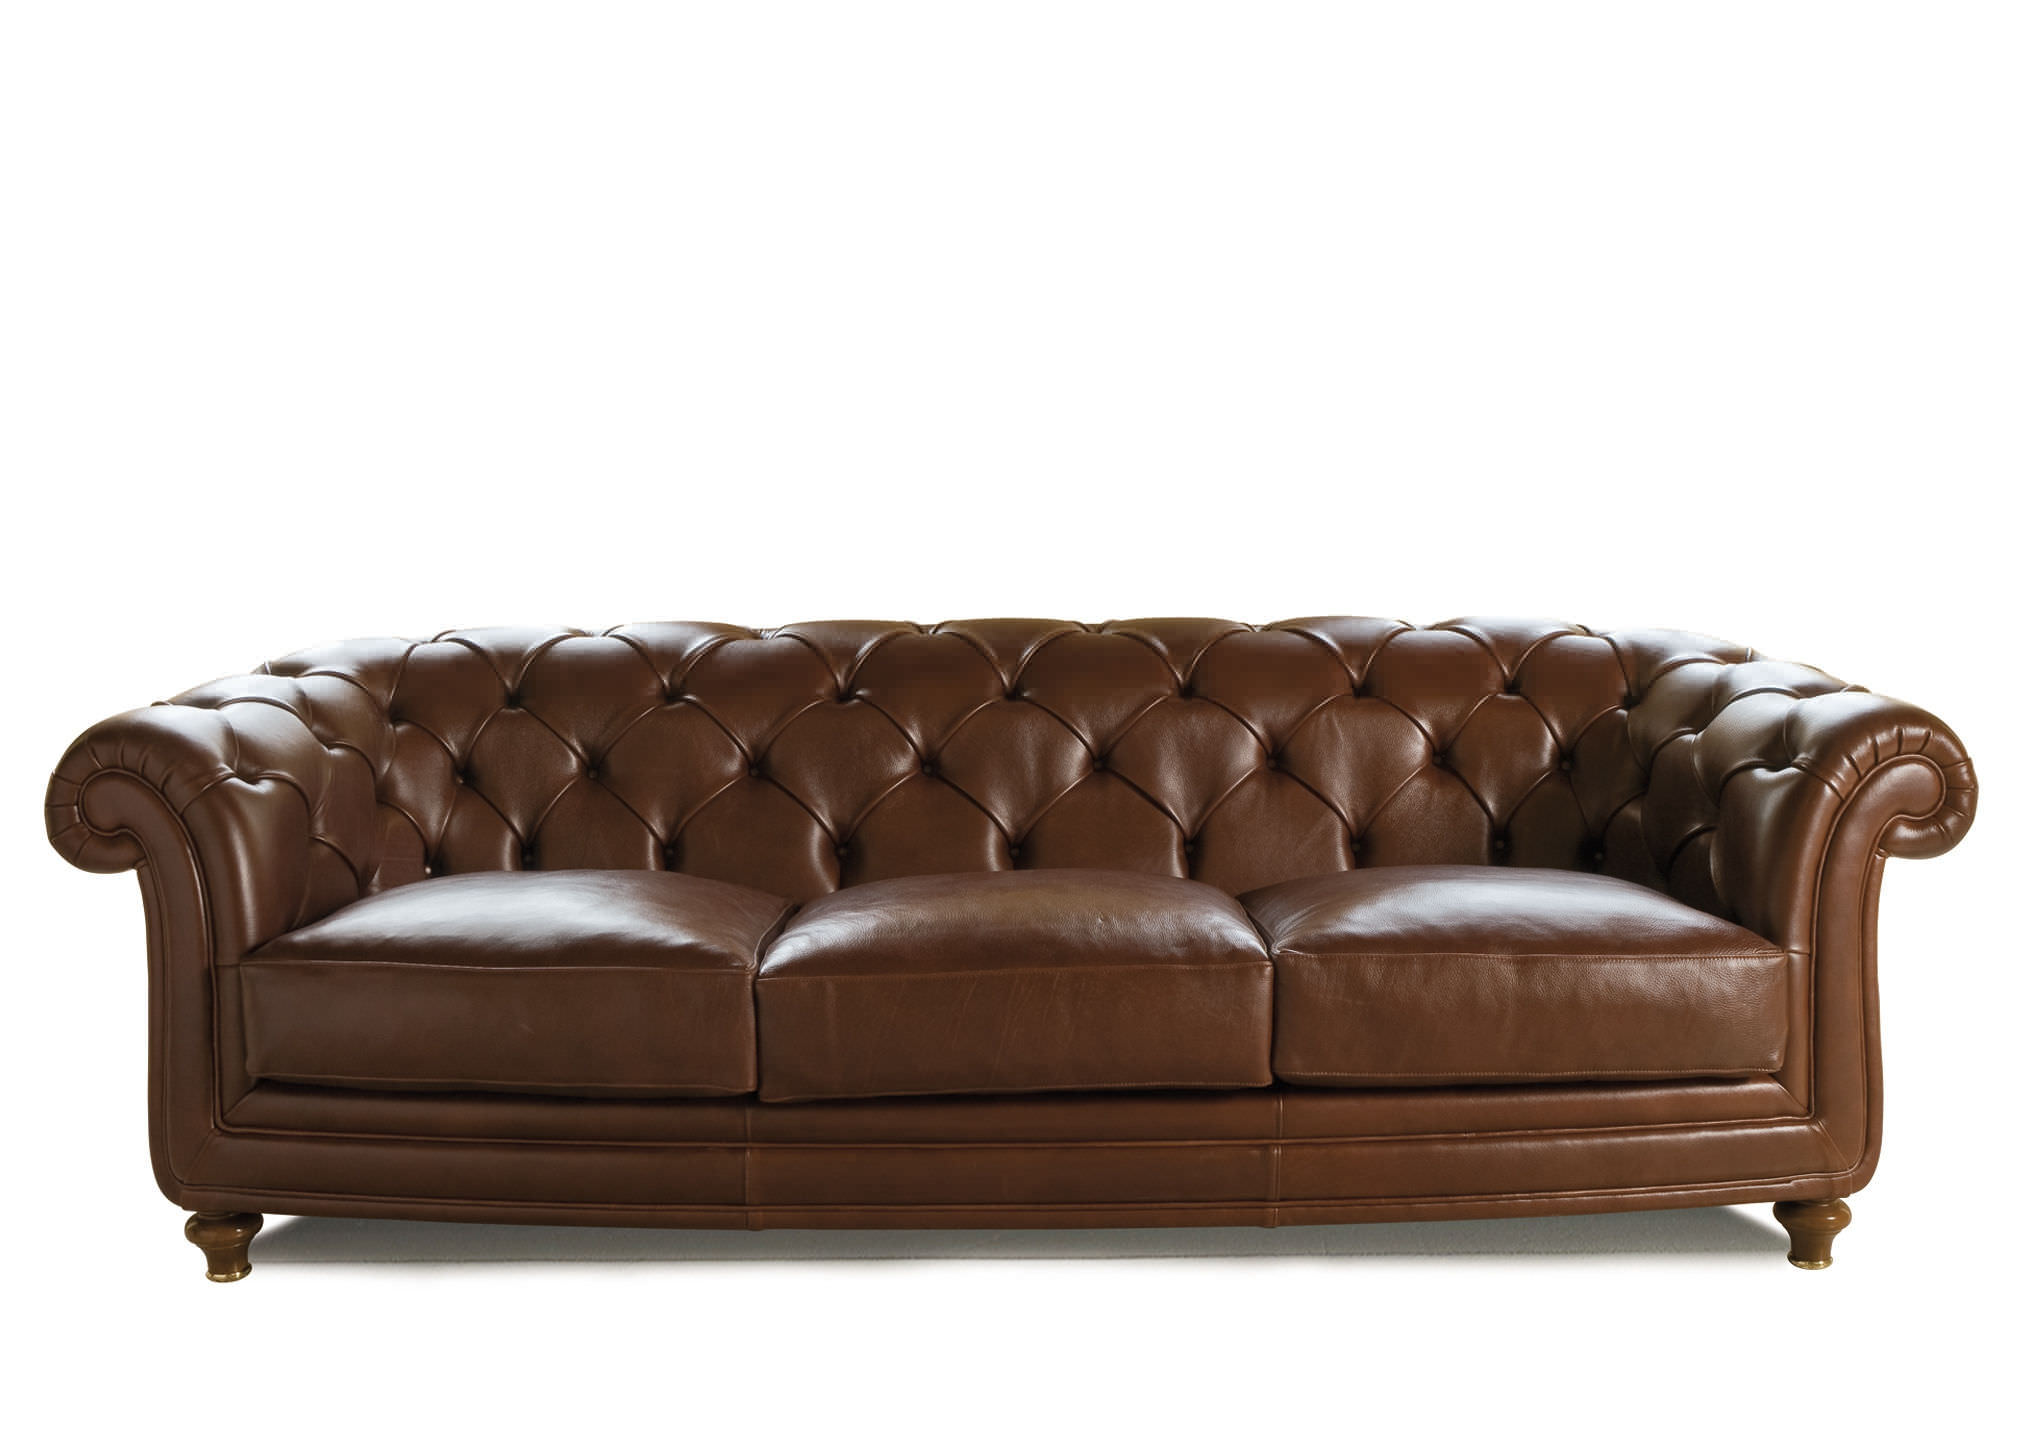 Chesterfield Sofa Leather Fabric 3 Seater Oxford Berto For Oxford Sofas (Image 1 of 15)